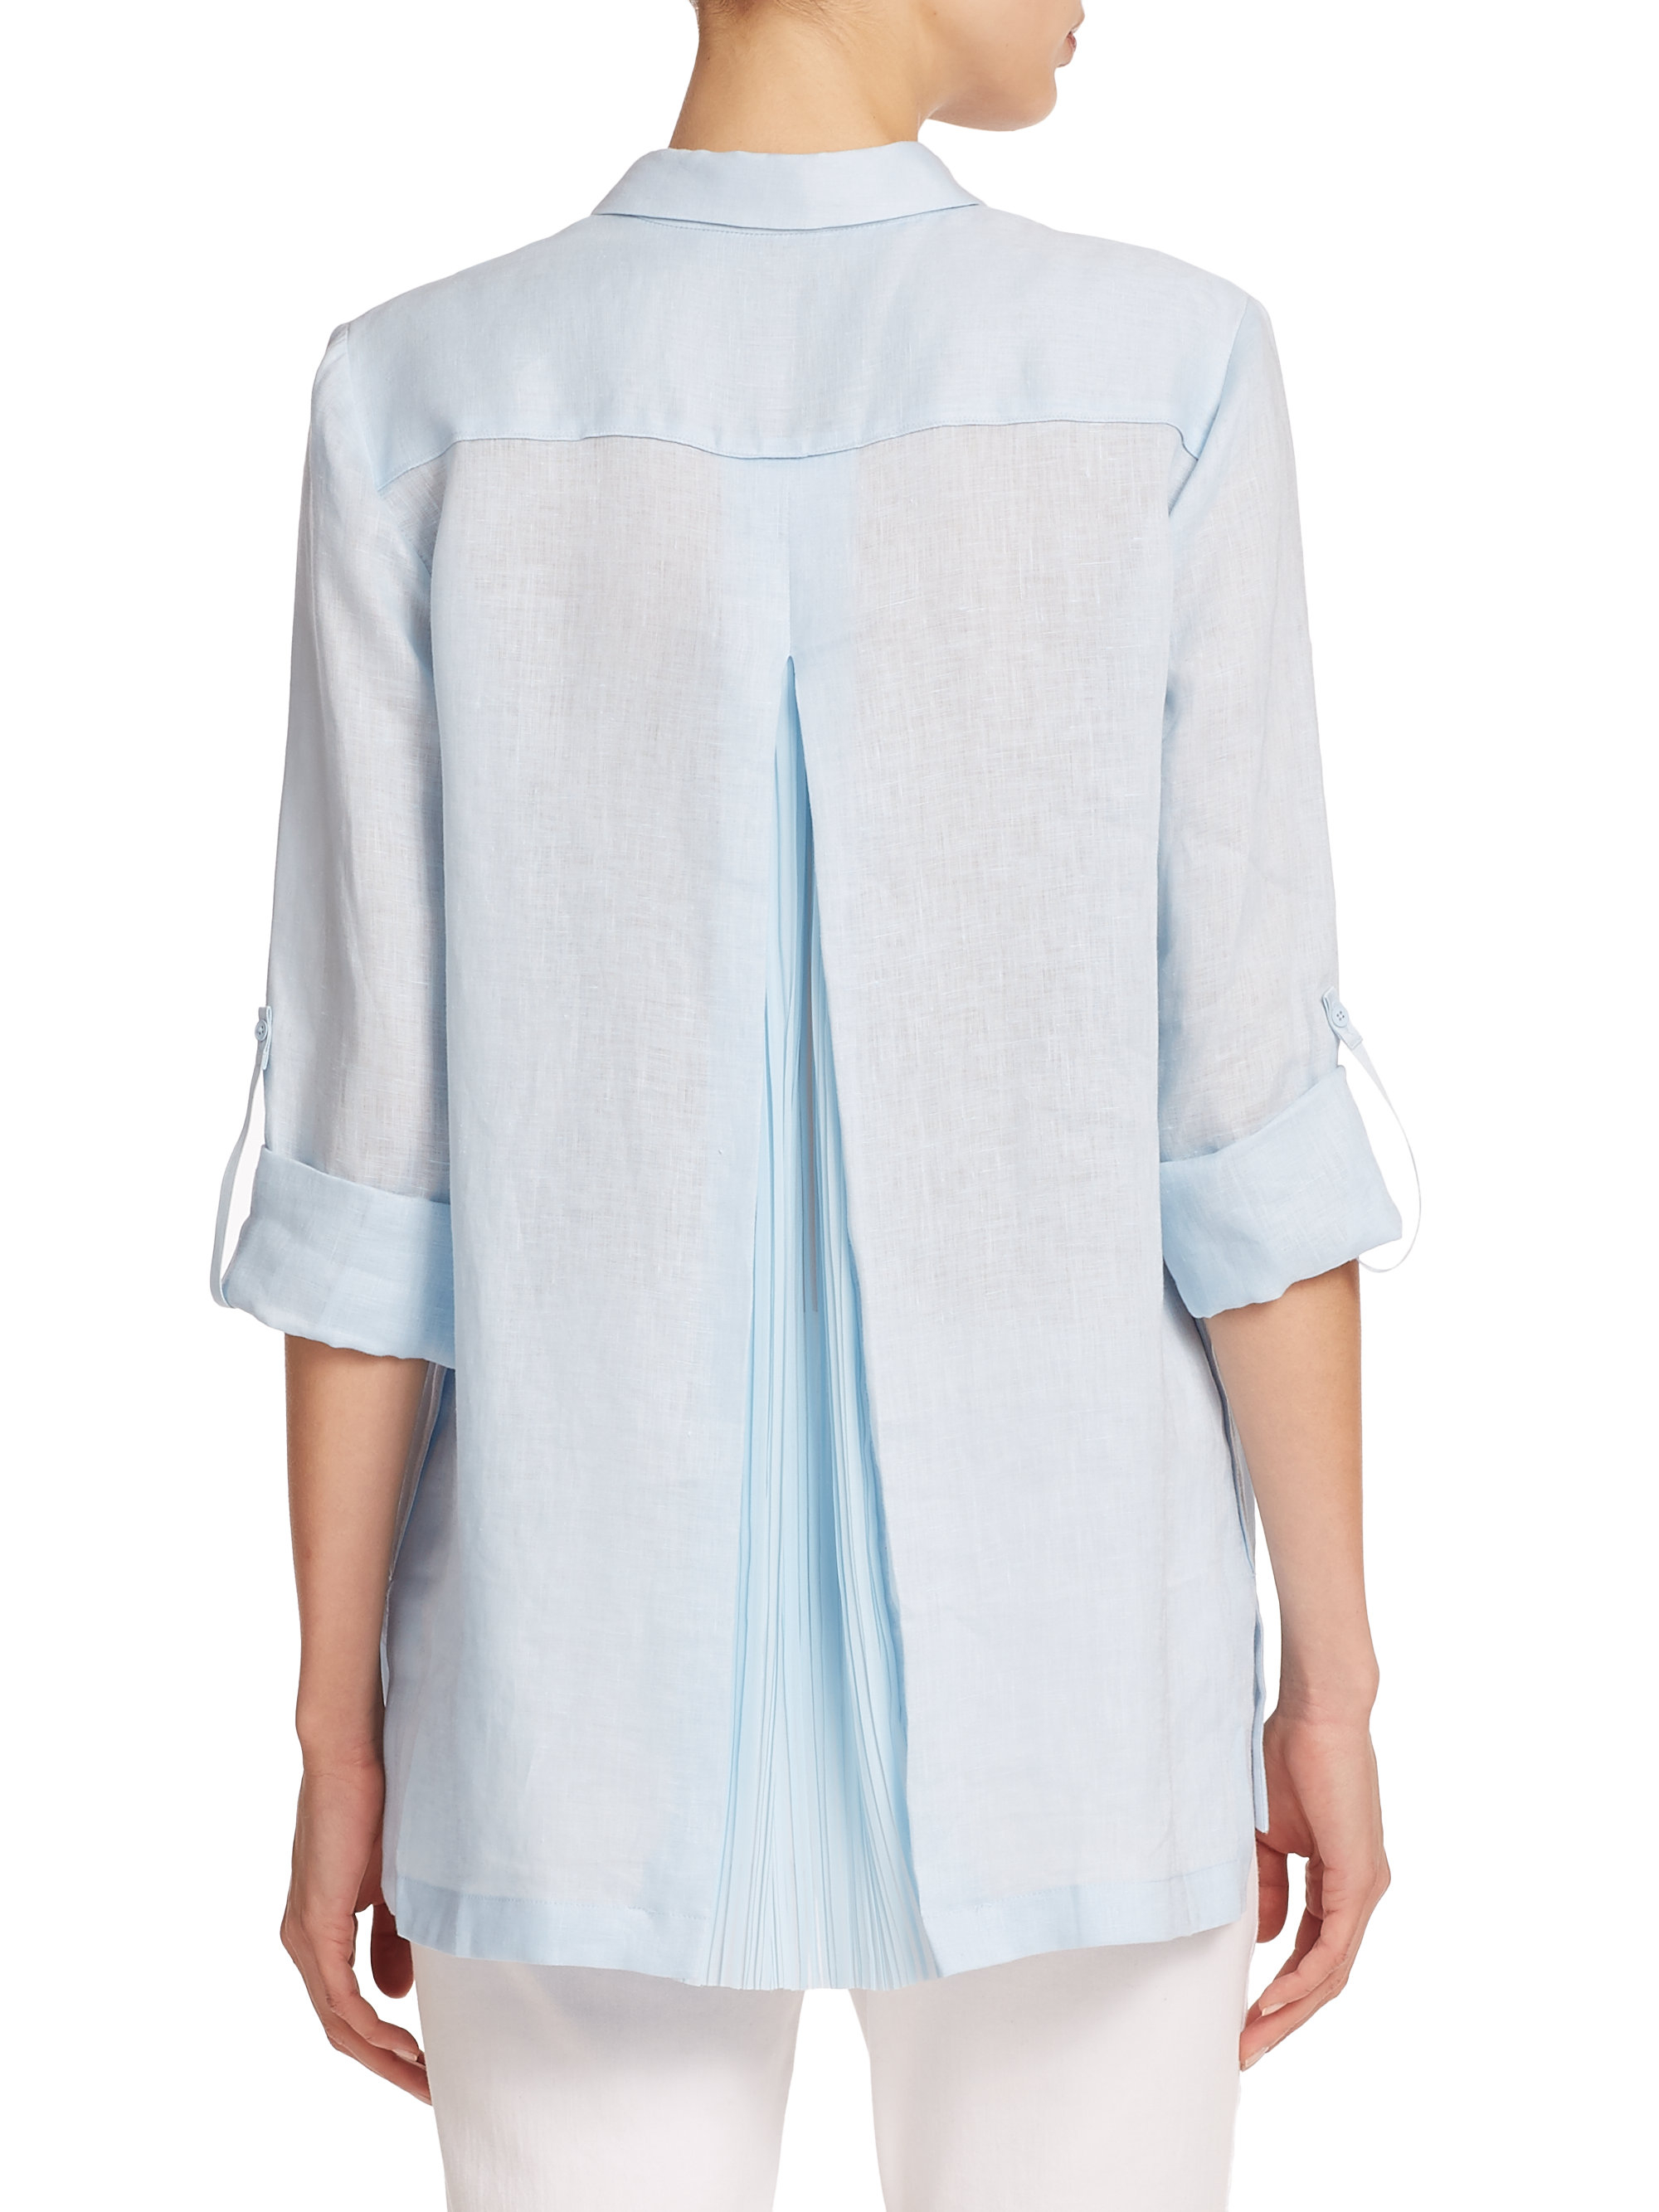 f7461506372e Elie Tahari Carly Blouse in Blue - Lyst